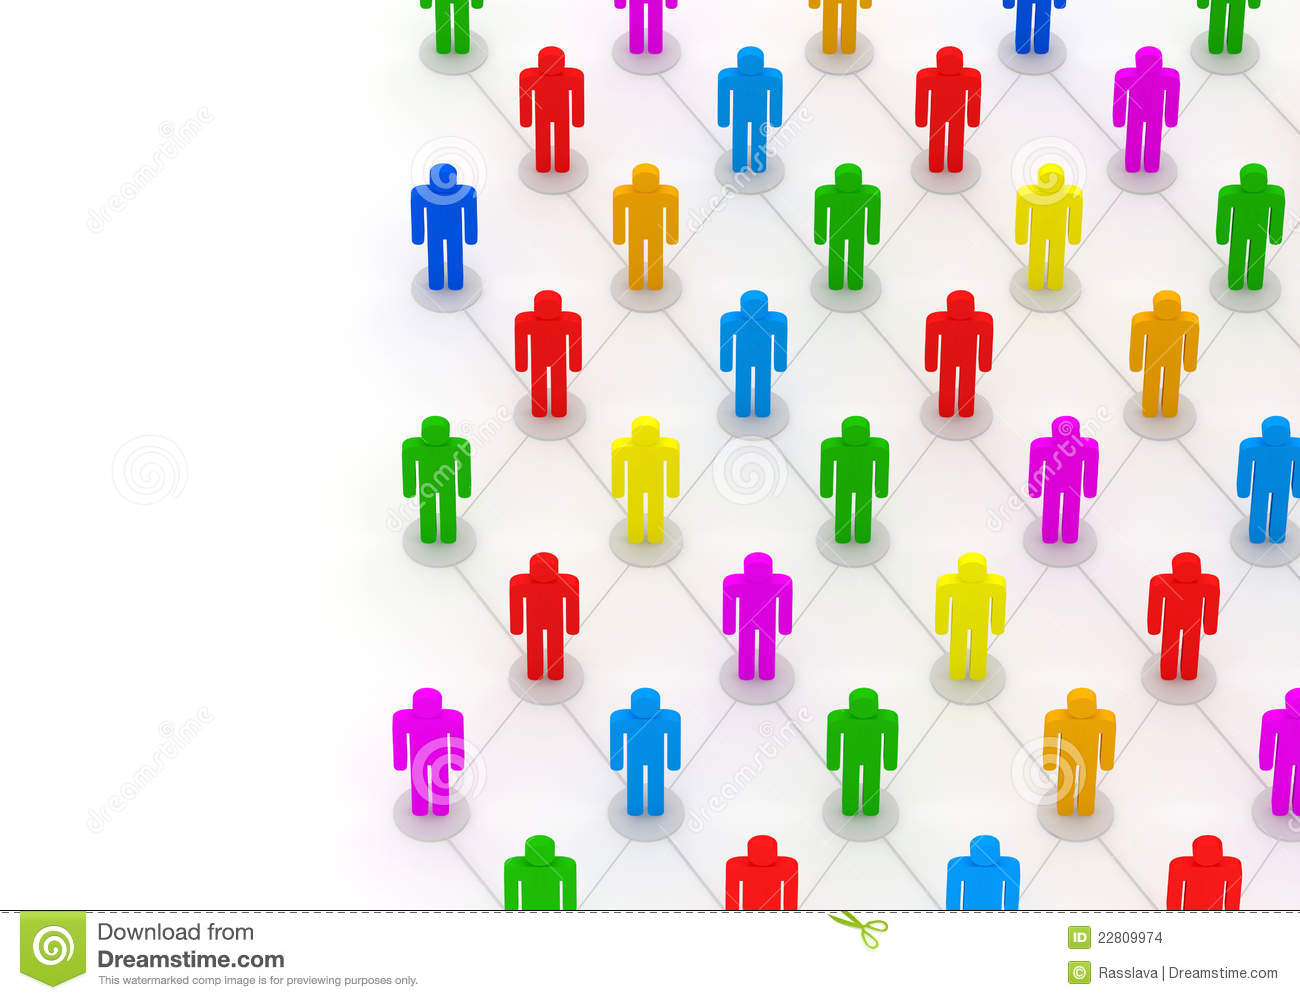 3d Illustration Of Colorful People Network Stock Images ... Colorful People